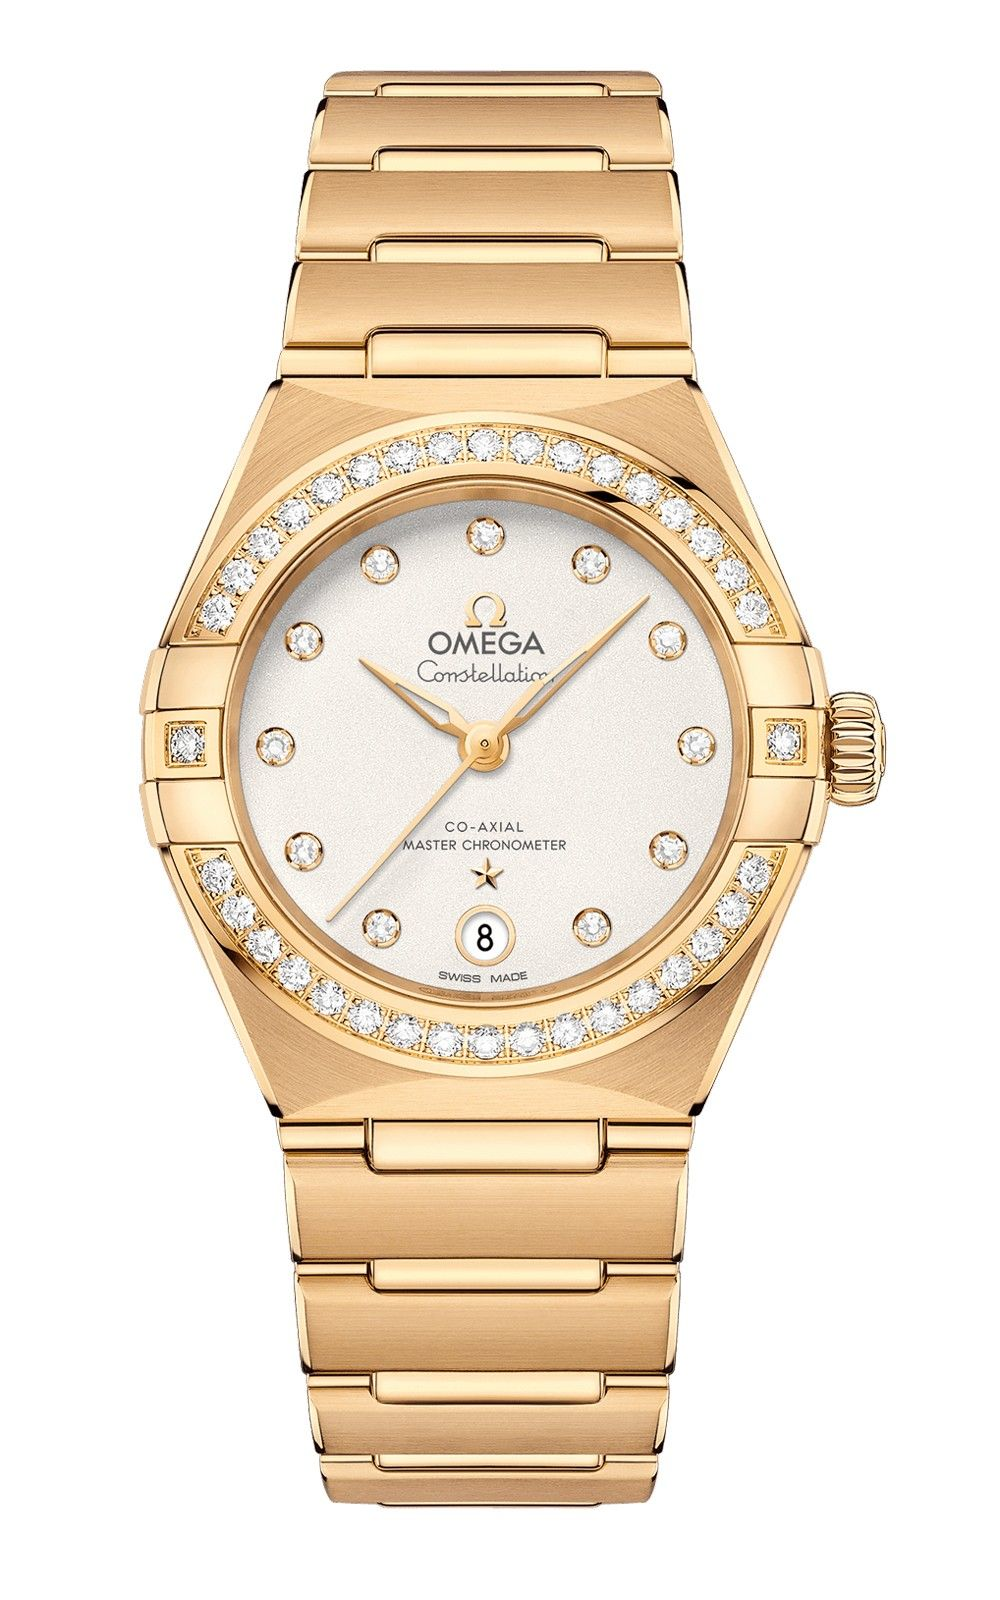 Hình Đồng hồ Omega Constellation Co‑Axial Master Chronometer, 29 mm 131.55.29.20.52.002